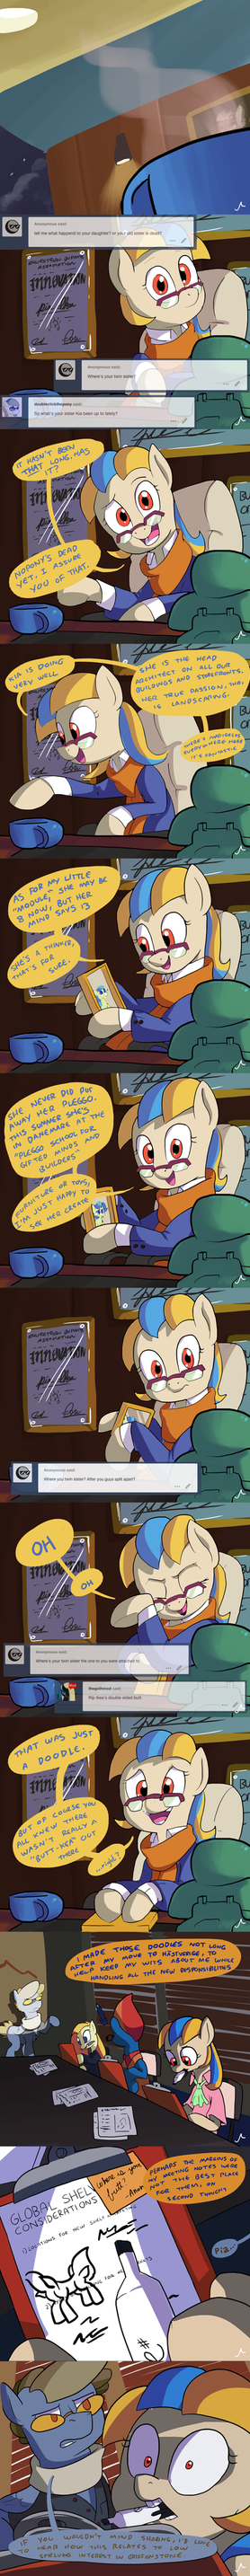 Ask Ikea Pony - Doodle Me This! by DocWario